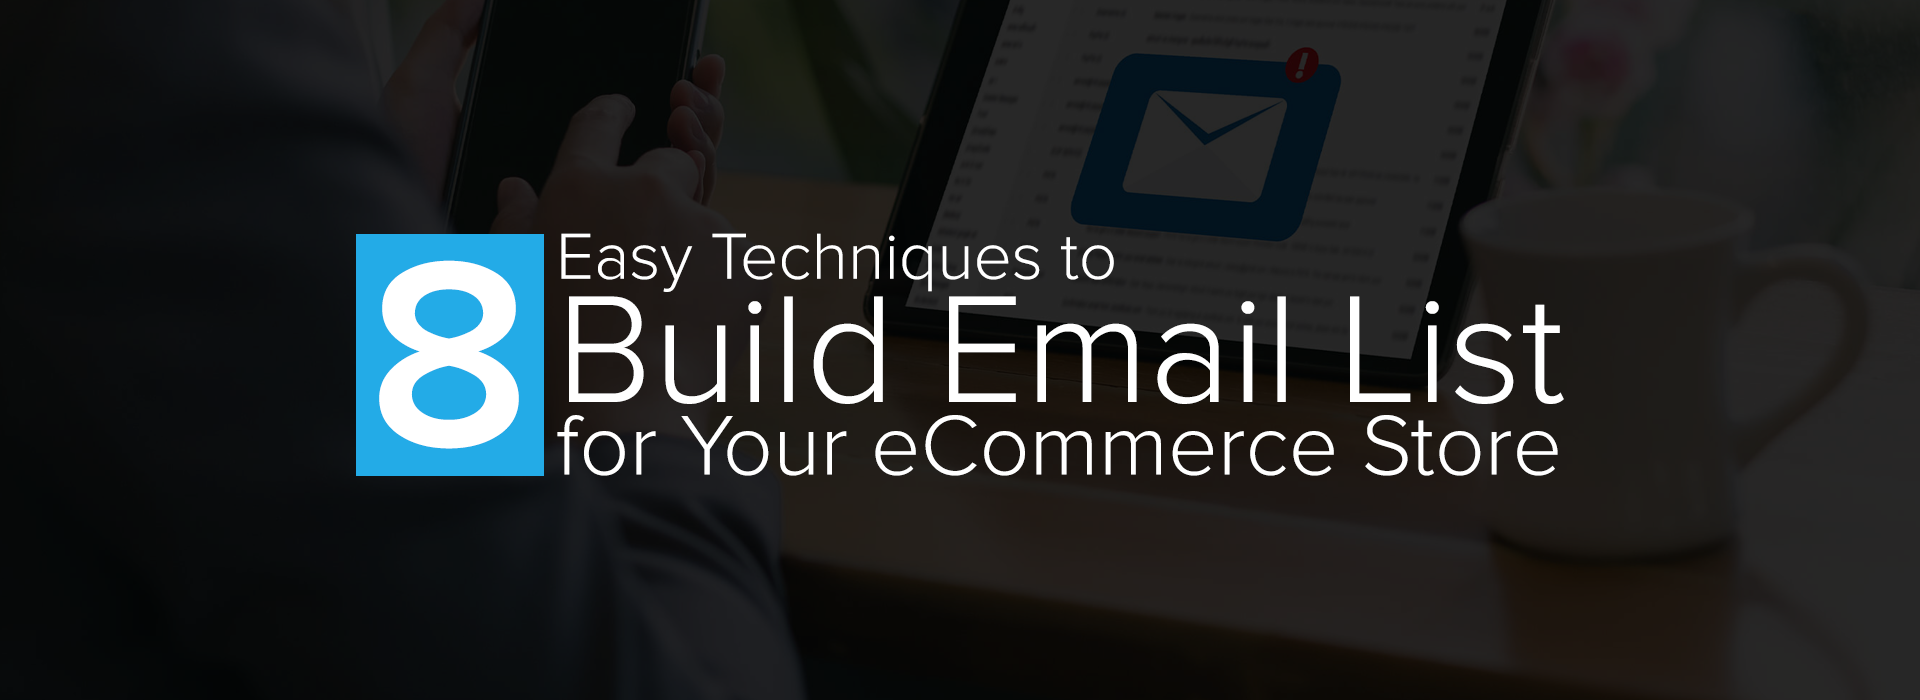 8-Easy-Techniques-to-Build-Email-List-for-Your-eCommerce-Store